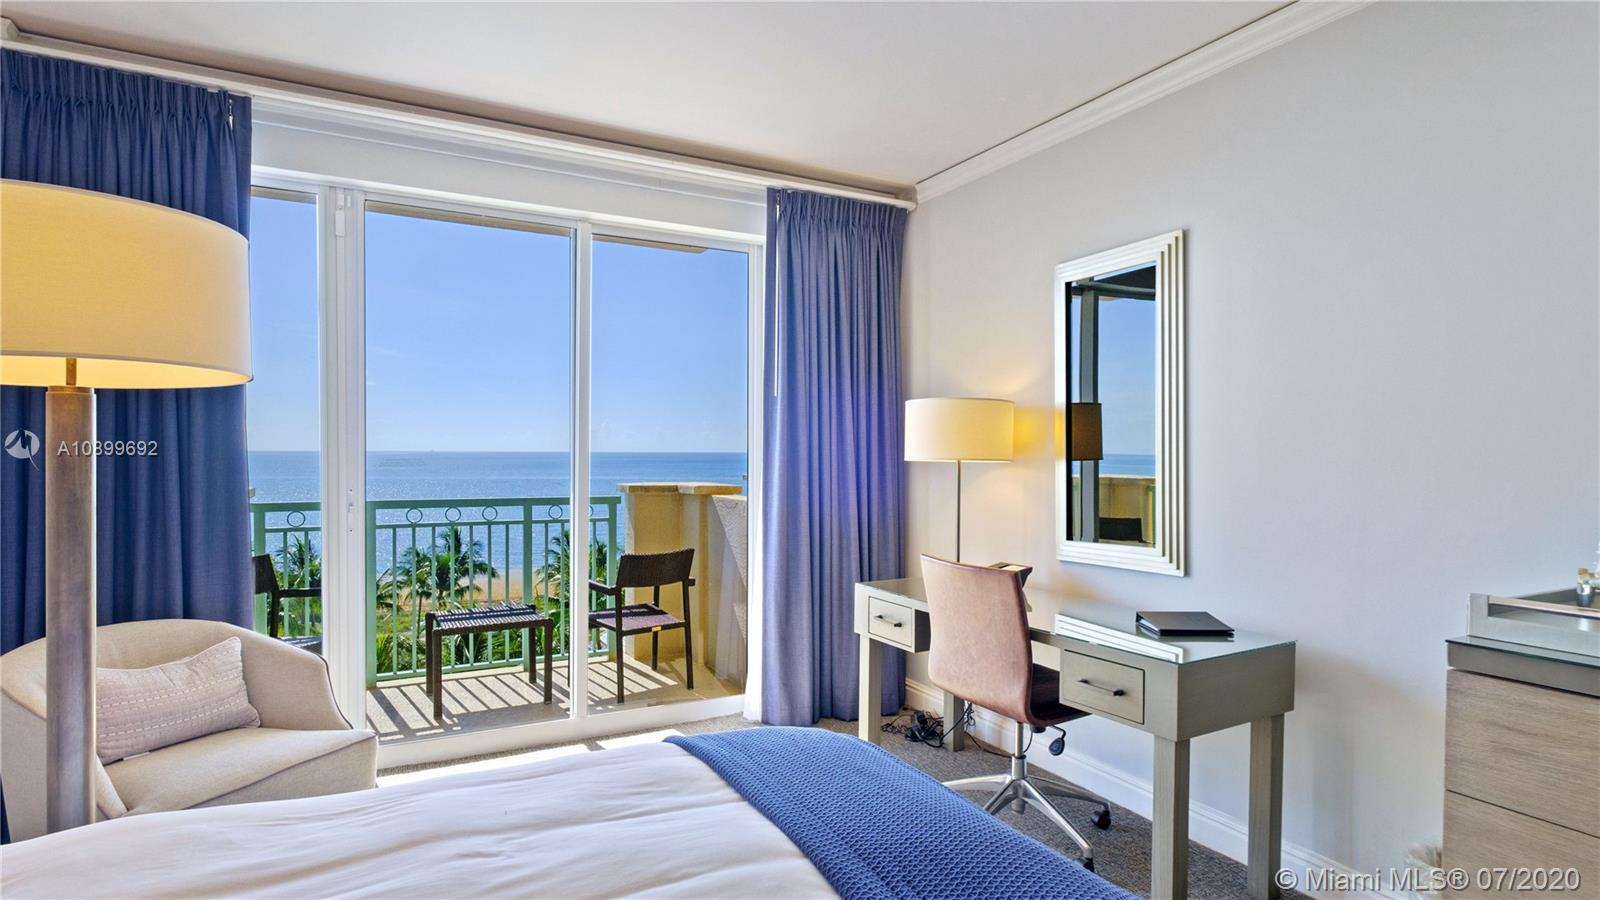 Take advantage of this great opportunity to rent an OCEAN FRONT STUDIO AT THE RITZ-CARLTON HOTEL in Key Biscayne. This unit has been renovated and is fully furnished with high end finishes. Enjoy your vacation in this luxurious condo hotel residence while having access to all of the hotel amenities.